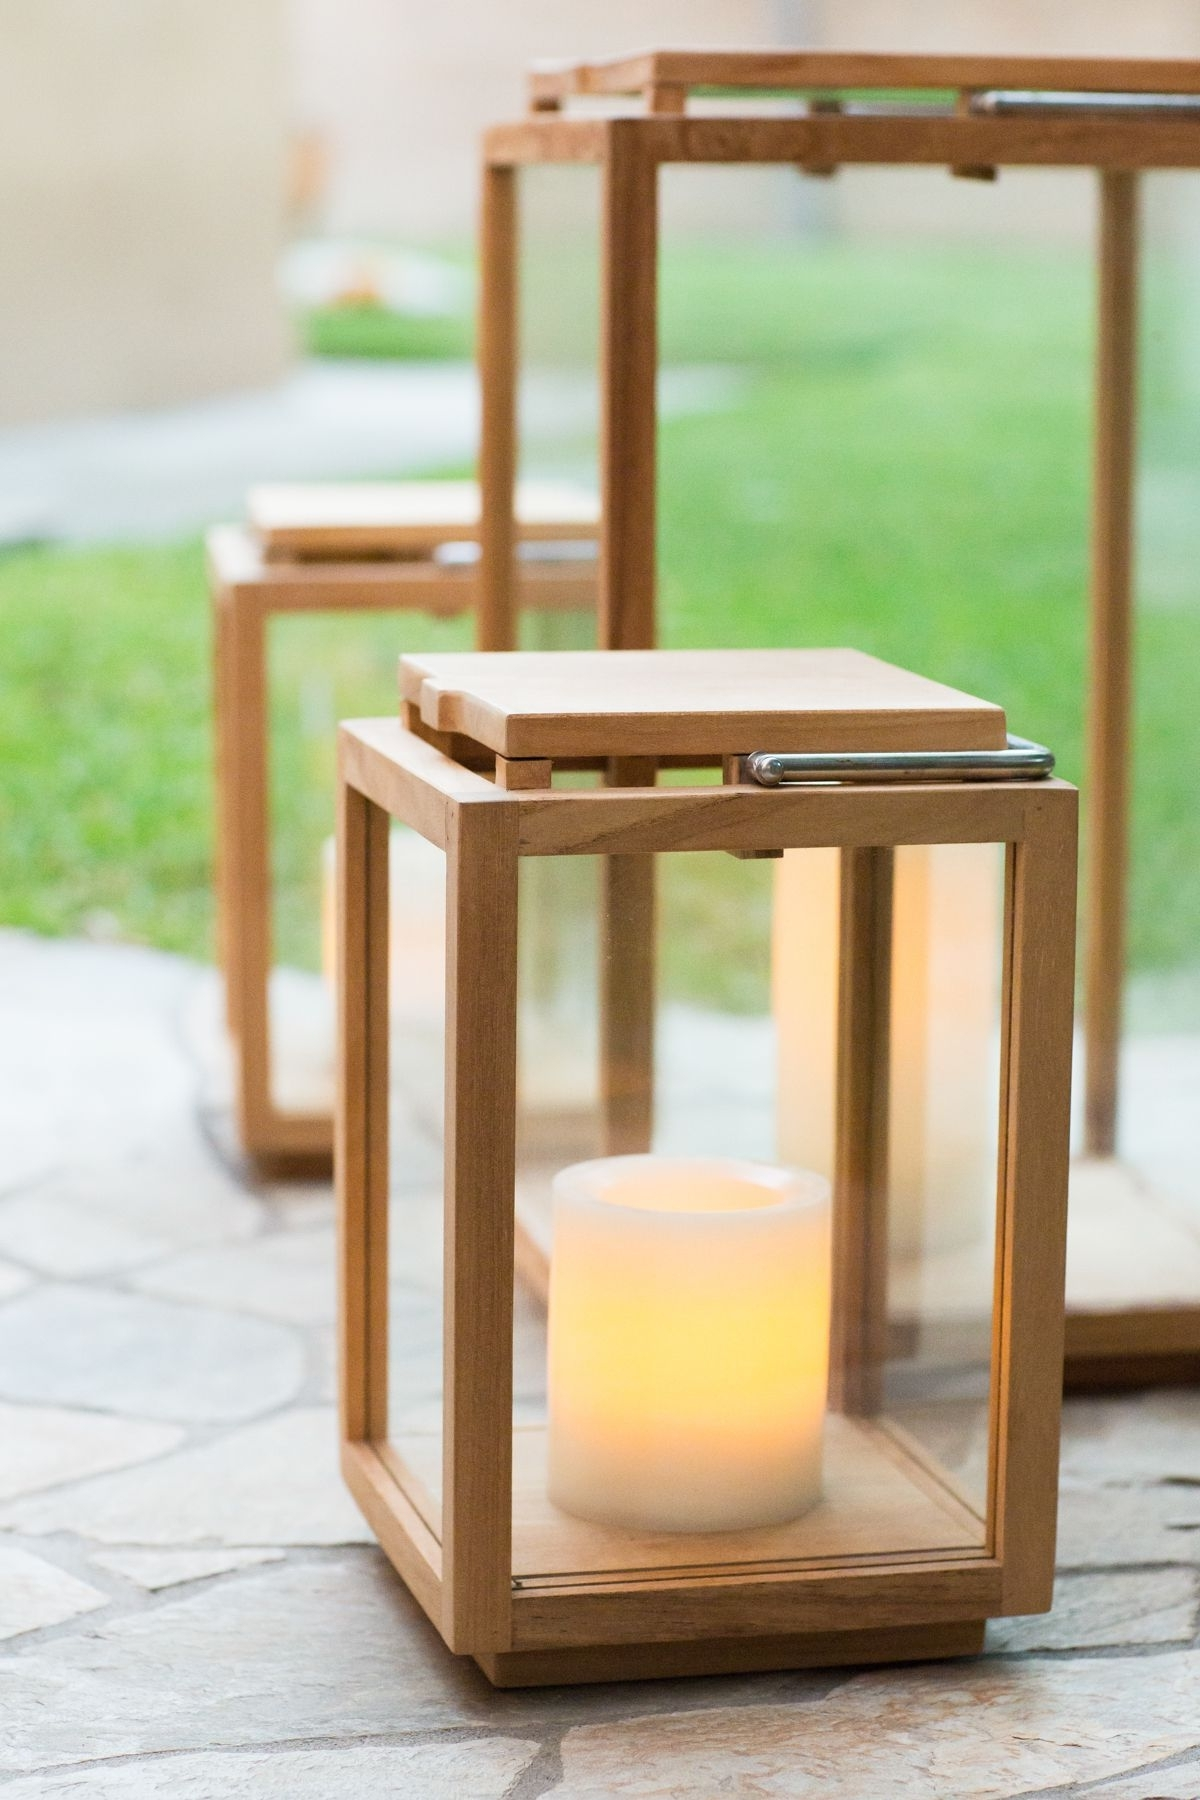 Outdoor Patio Teak Lanterns // Outdoor Lighting // Patio // Outdoor For Well Liked Outdoor Teak Lanterns (Gallery 7 of 20)